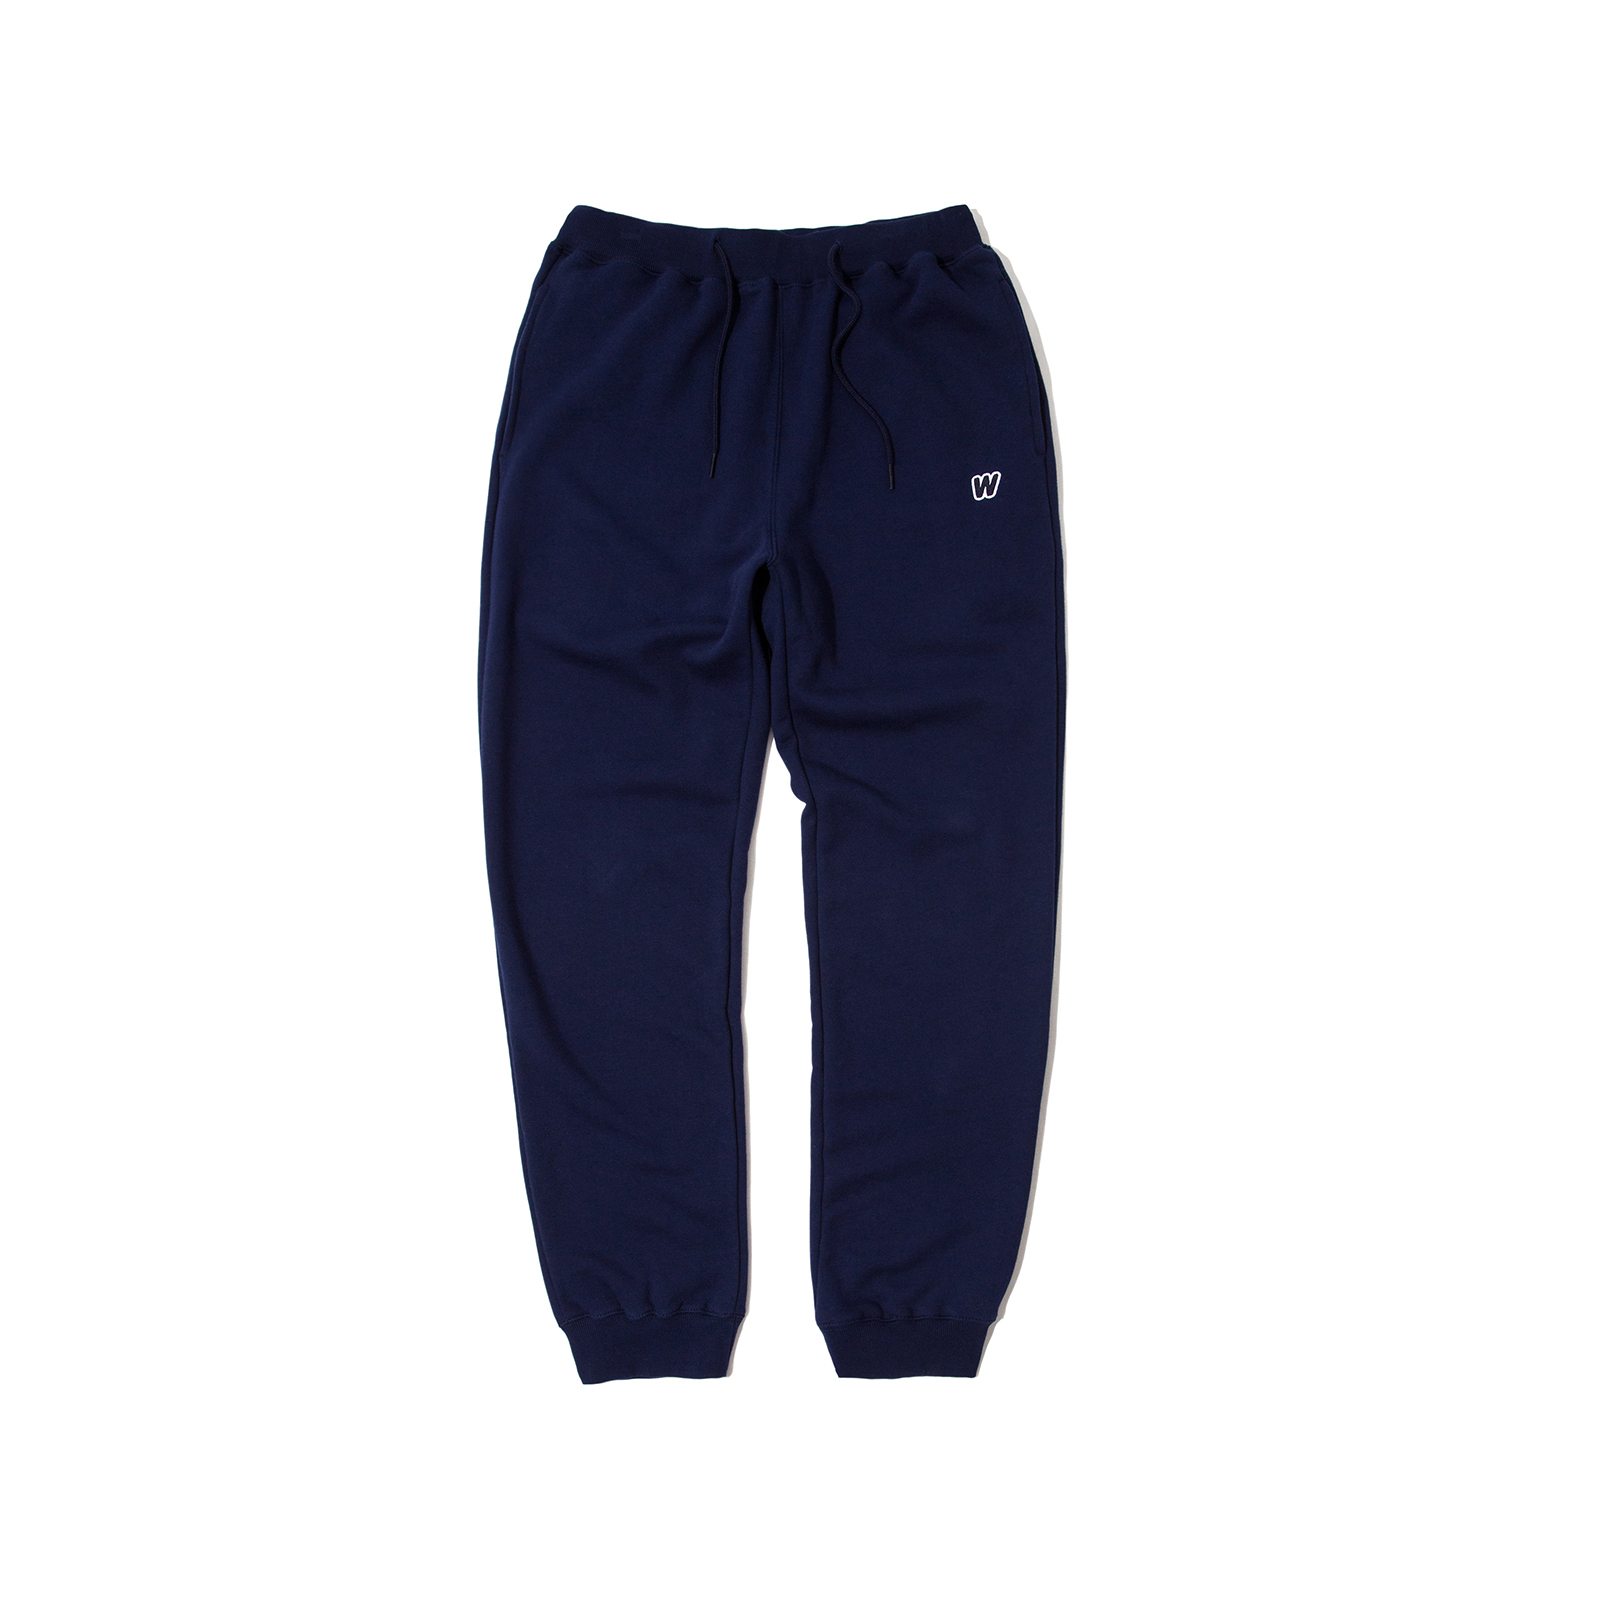 W LOGO SWEAT PANTS (NAVY)